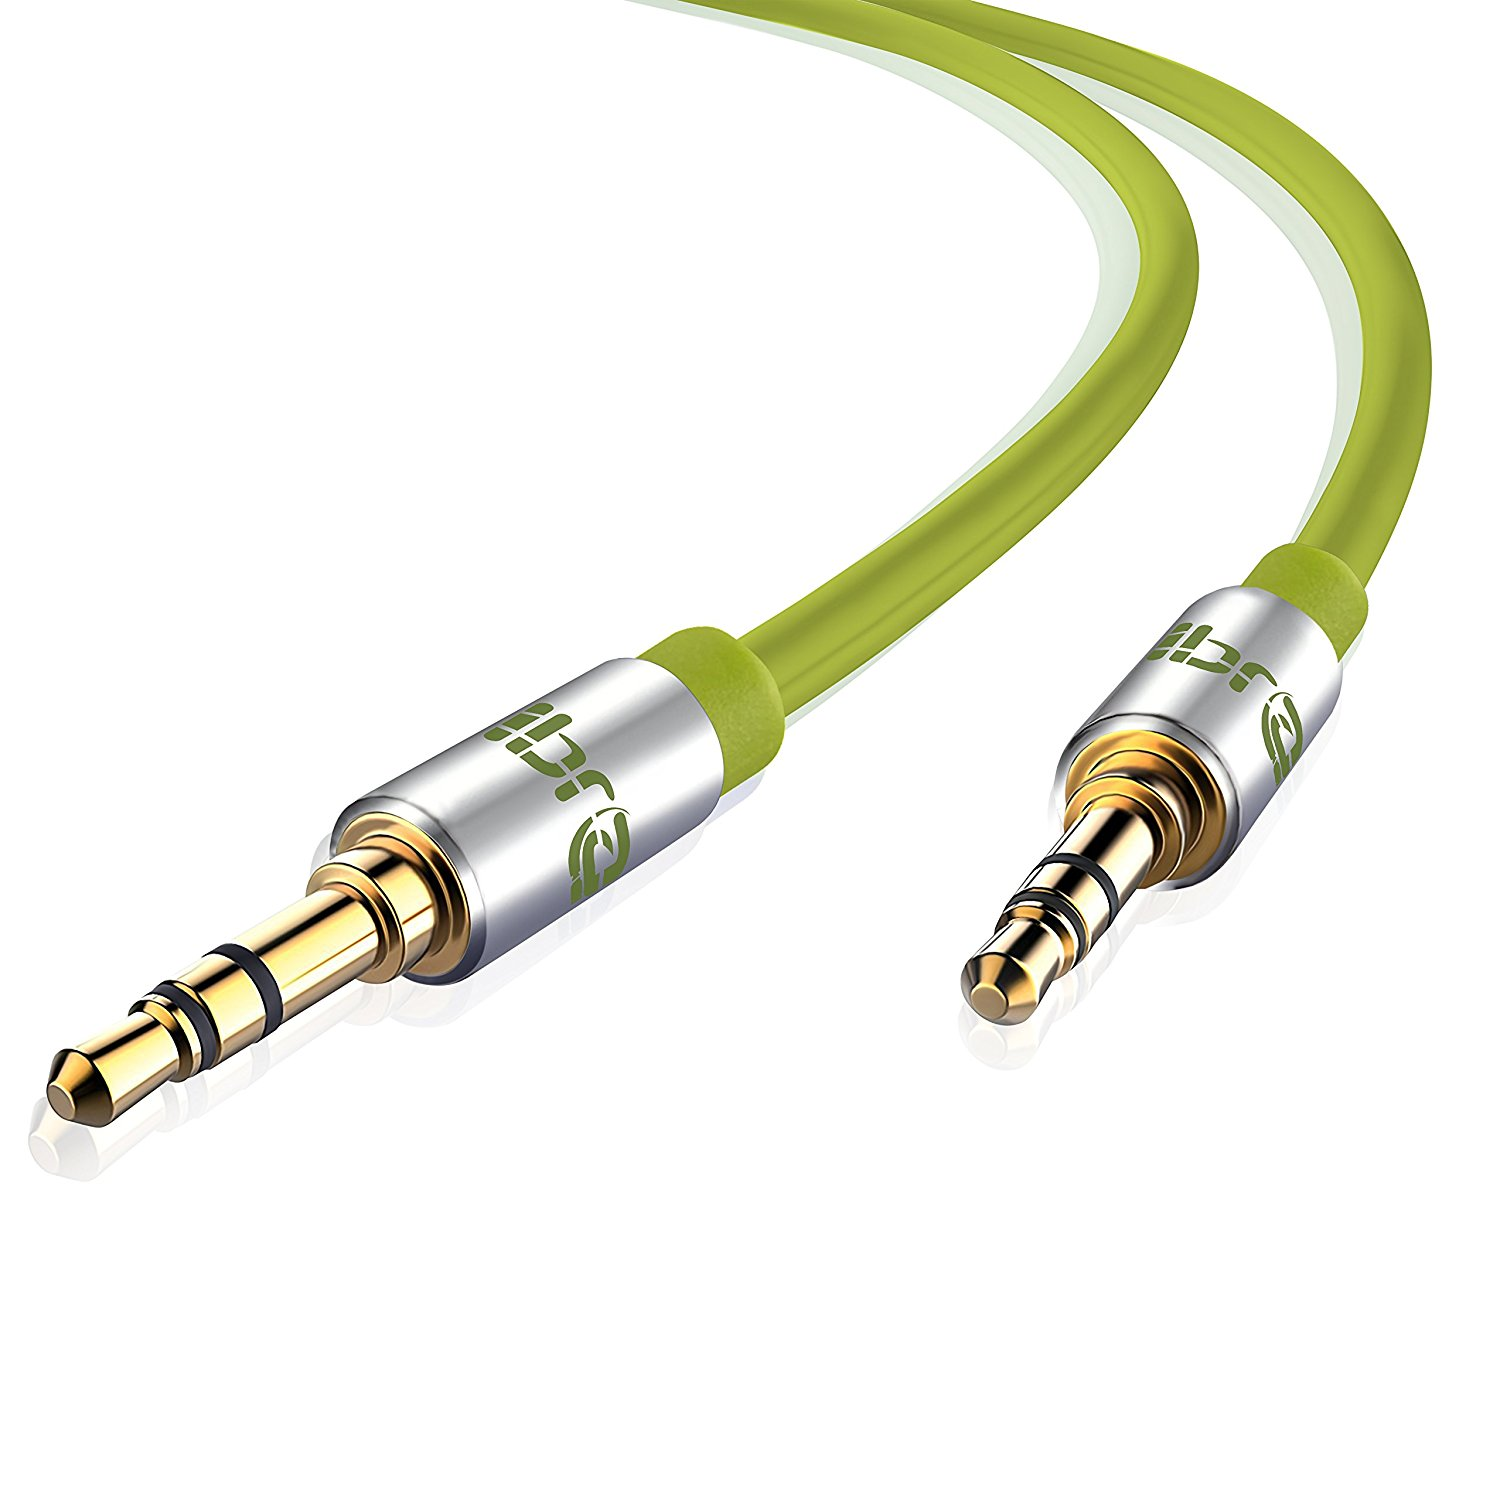 Aux Cable 5M 3.5mm Stereo Pro Auxiliary Audio Cable - for Beats Headphones Apple iPod iPhone iPad Samsung LG Smartphone MP3 Player Home / Car etc - IBRA Green